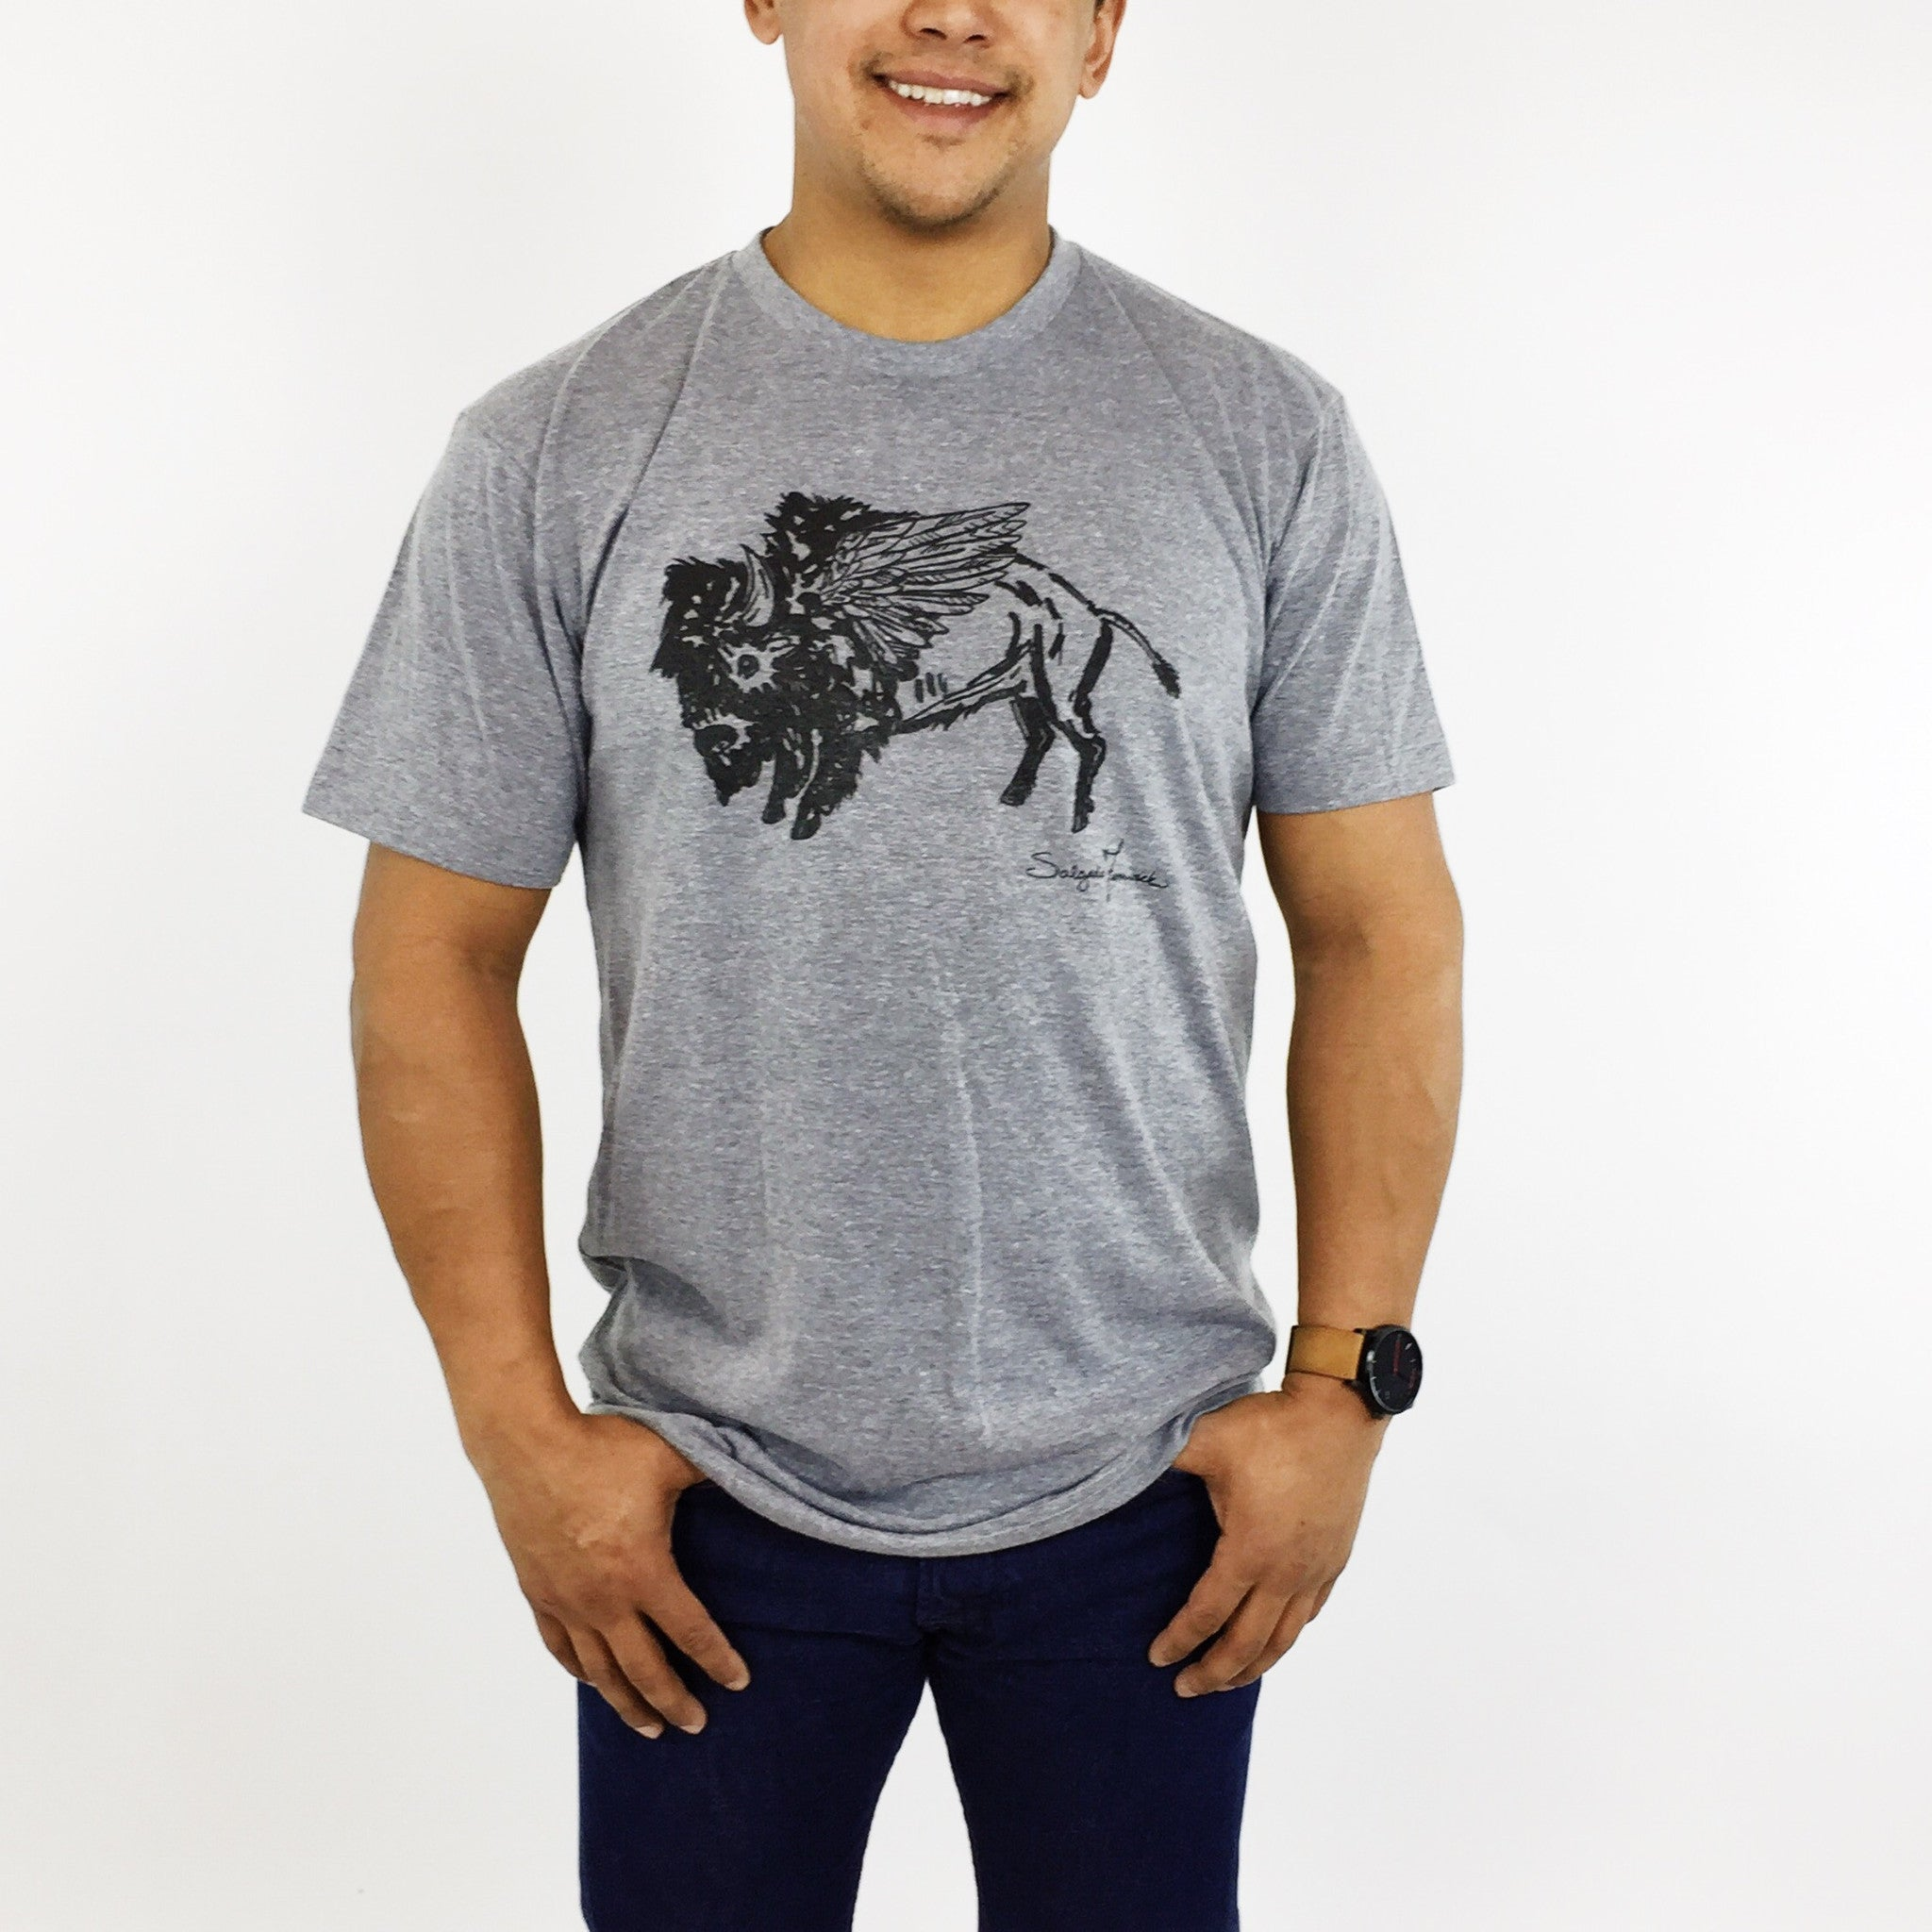 Men's Crew Neck - Winged Buffalo